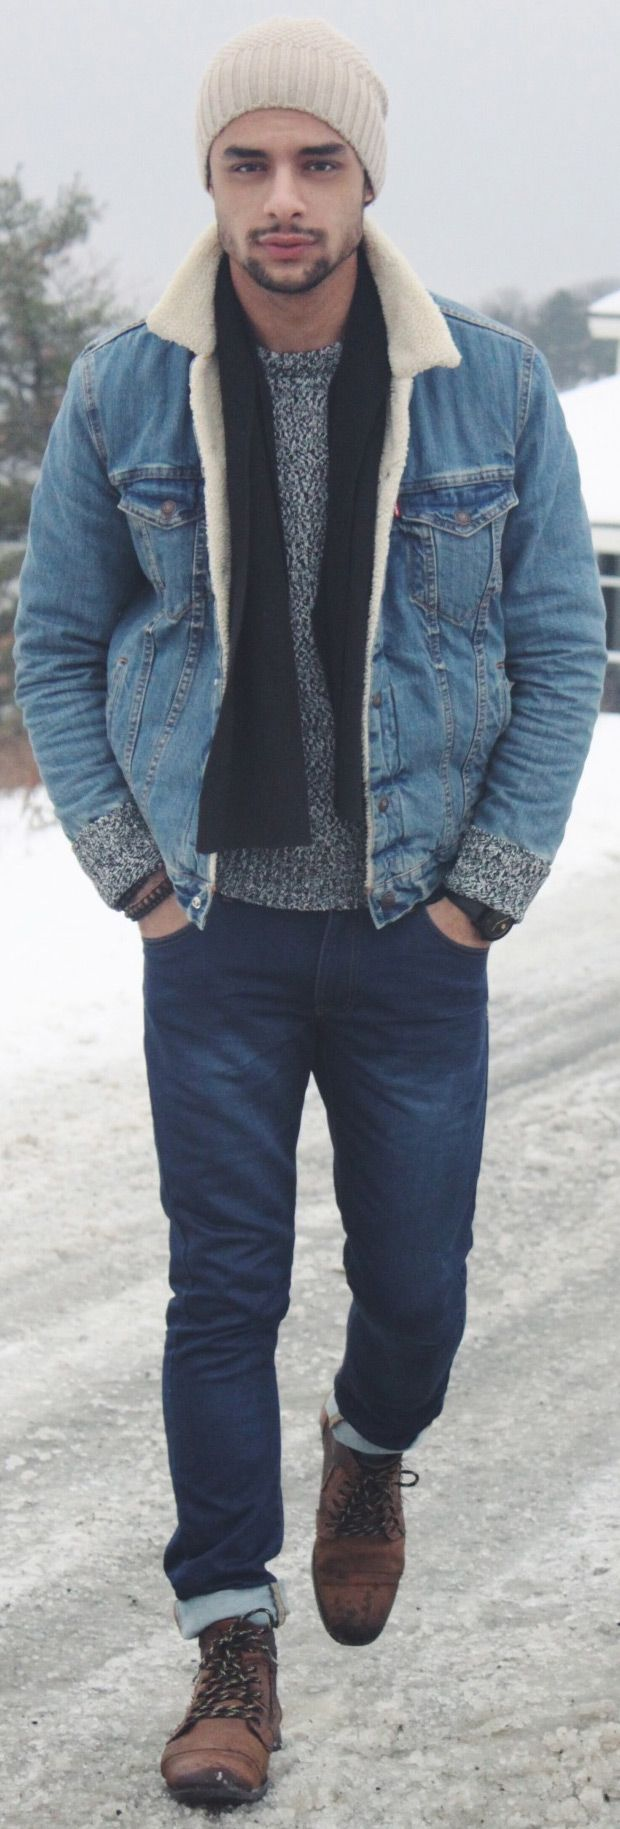 Winter Brilliance Show Up For A Date Looking Like This And